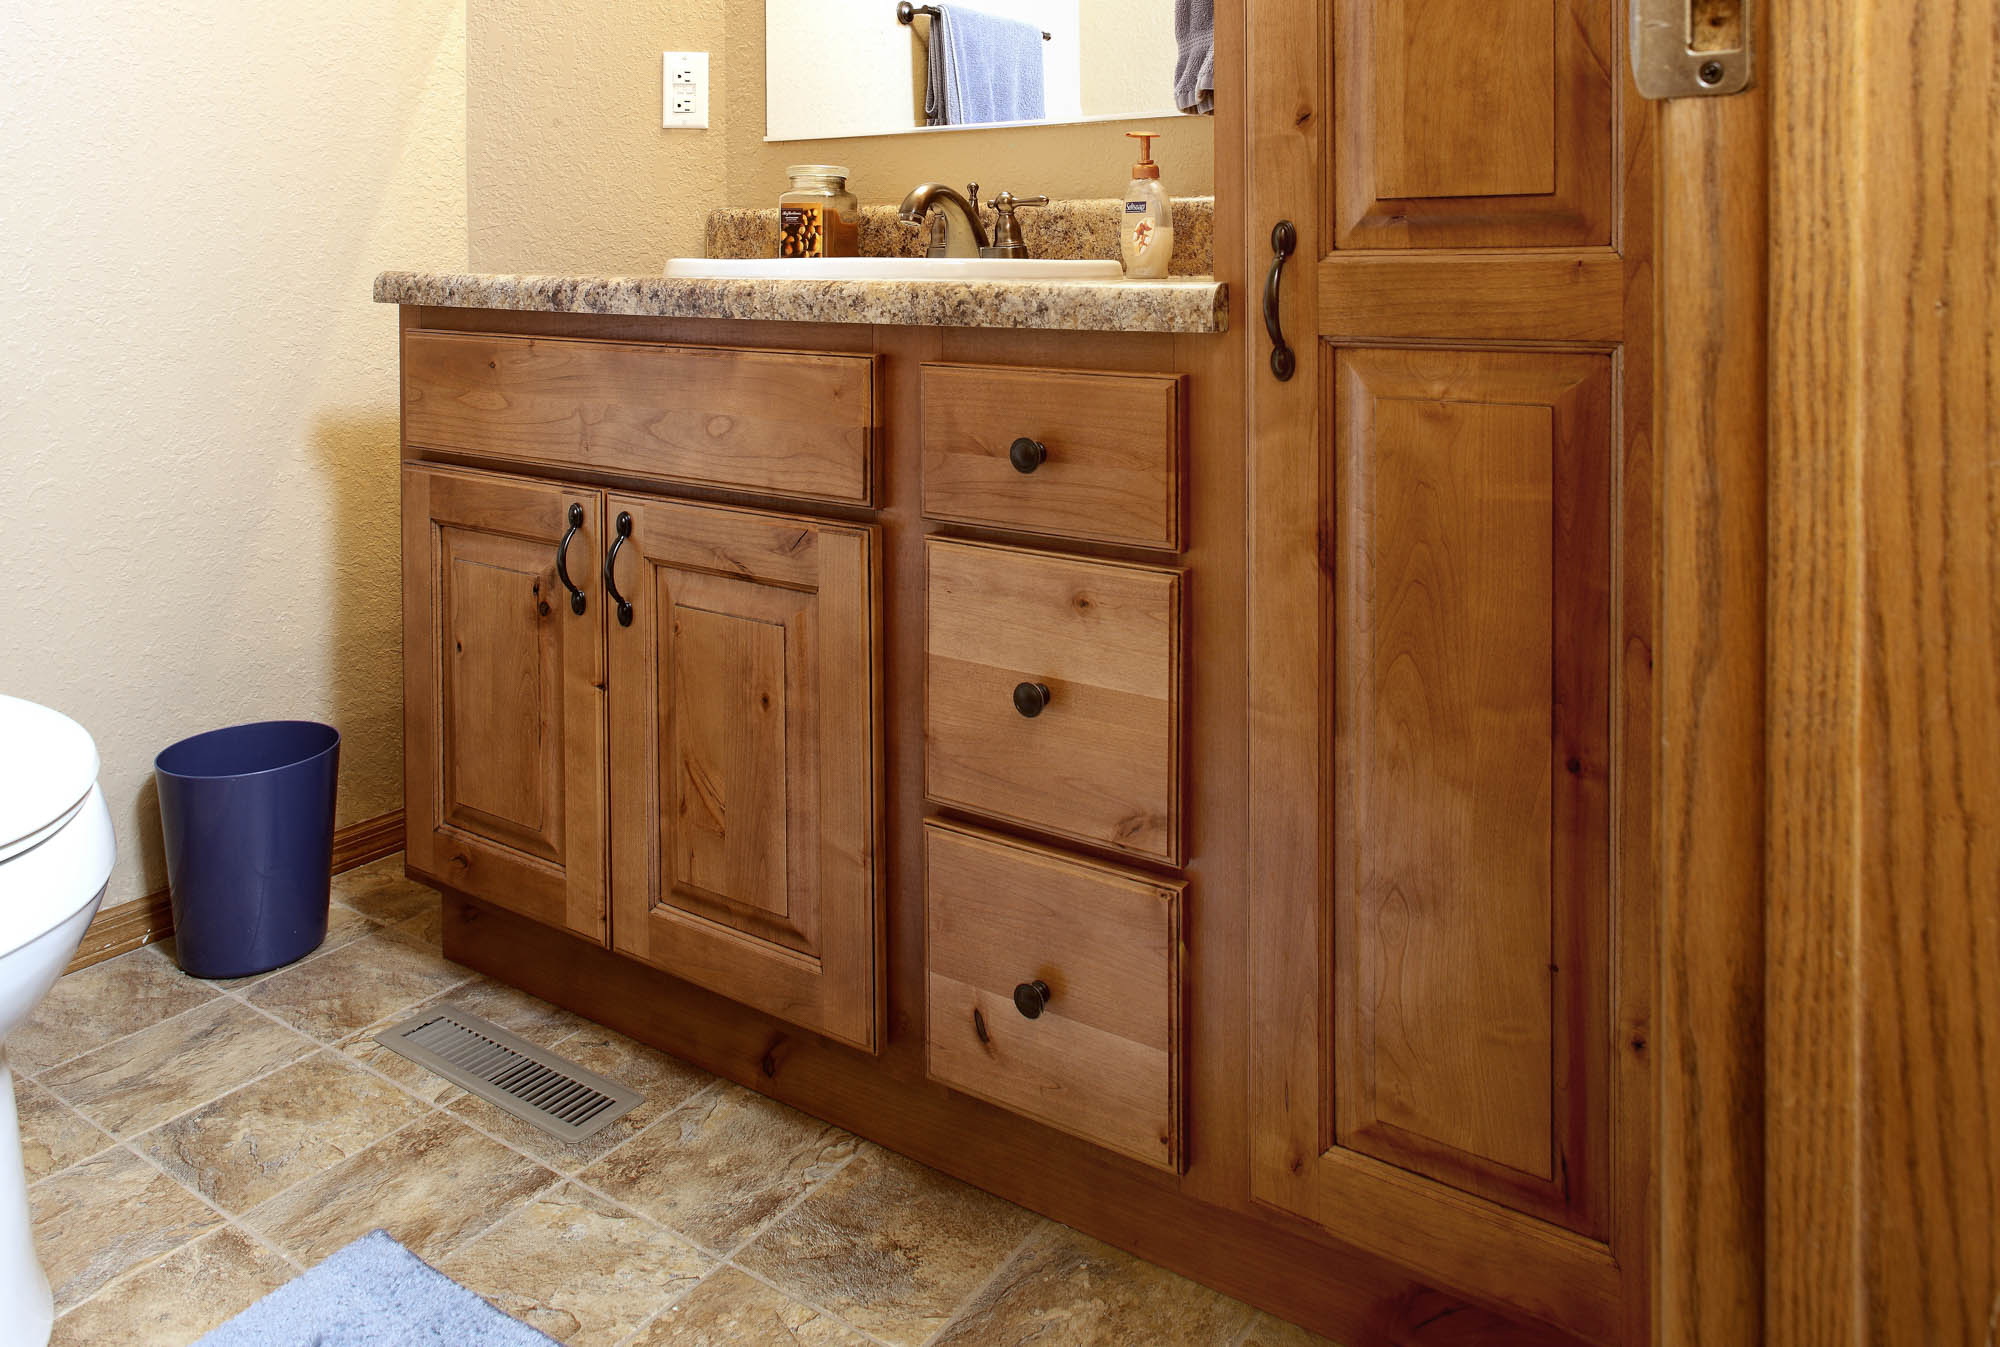 Renew   Stained bathroom vanity in Nutmeg with Ebony Glaze by Showplace Cabinetry